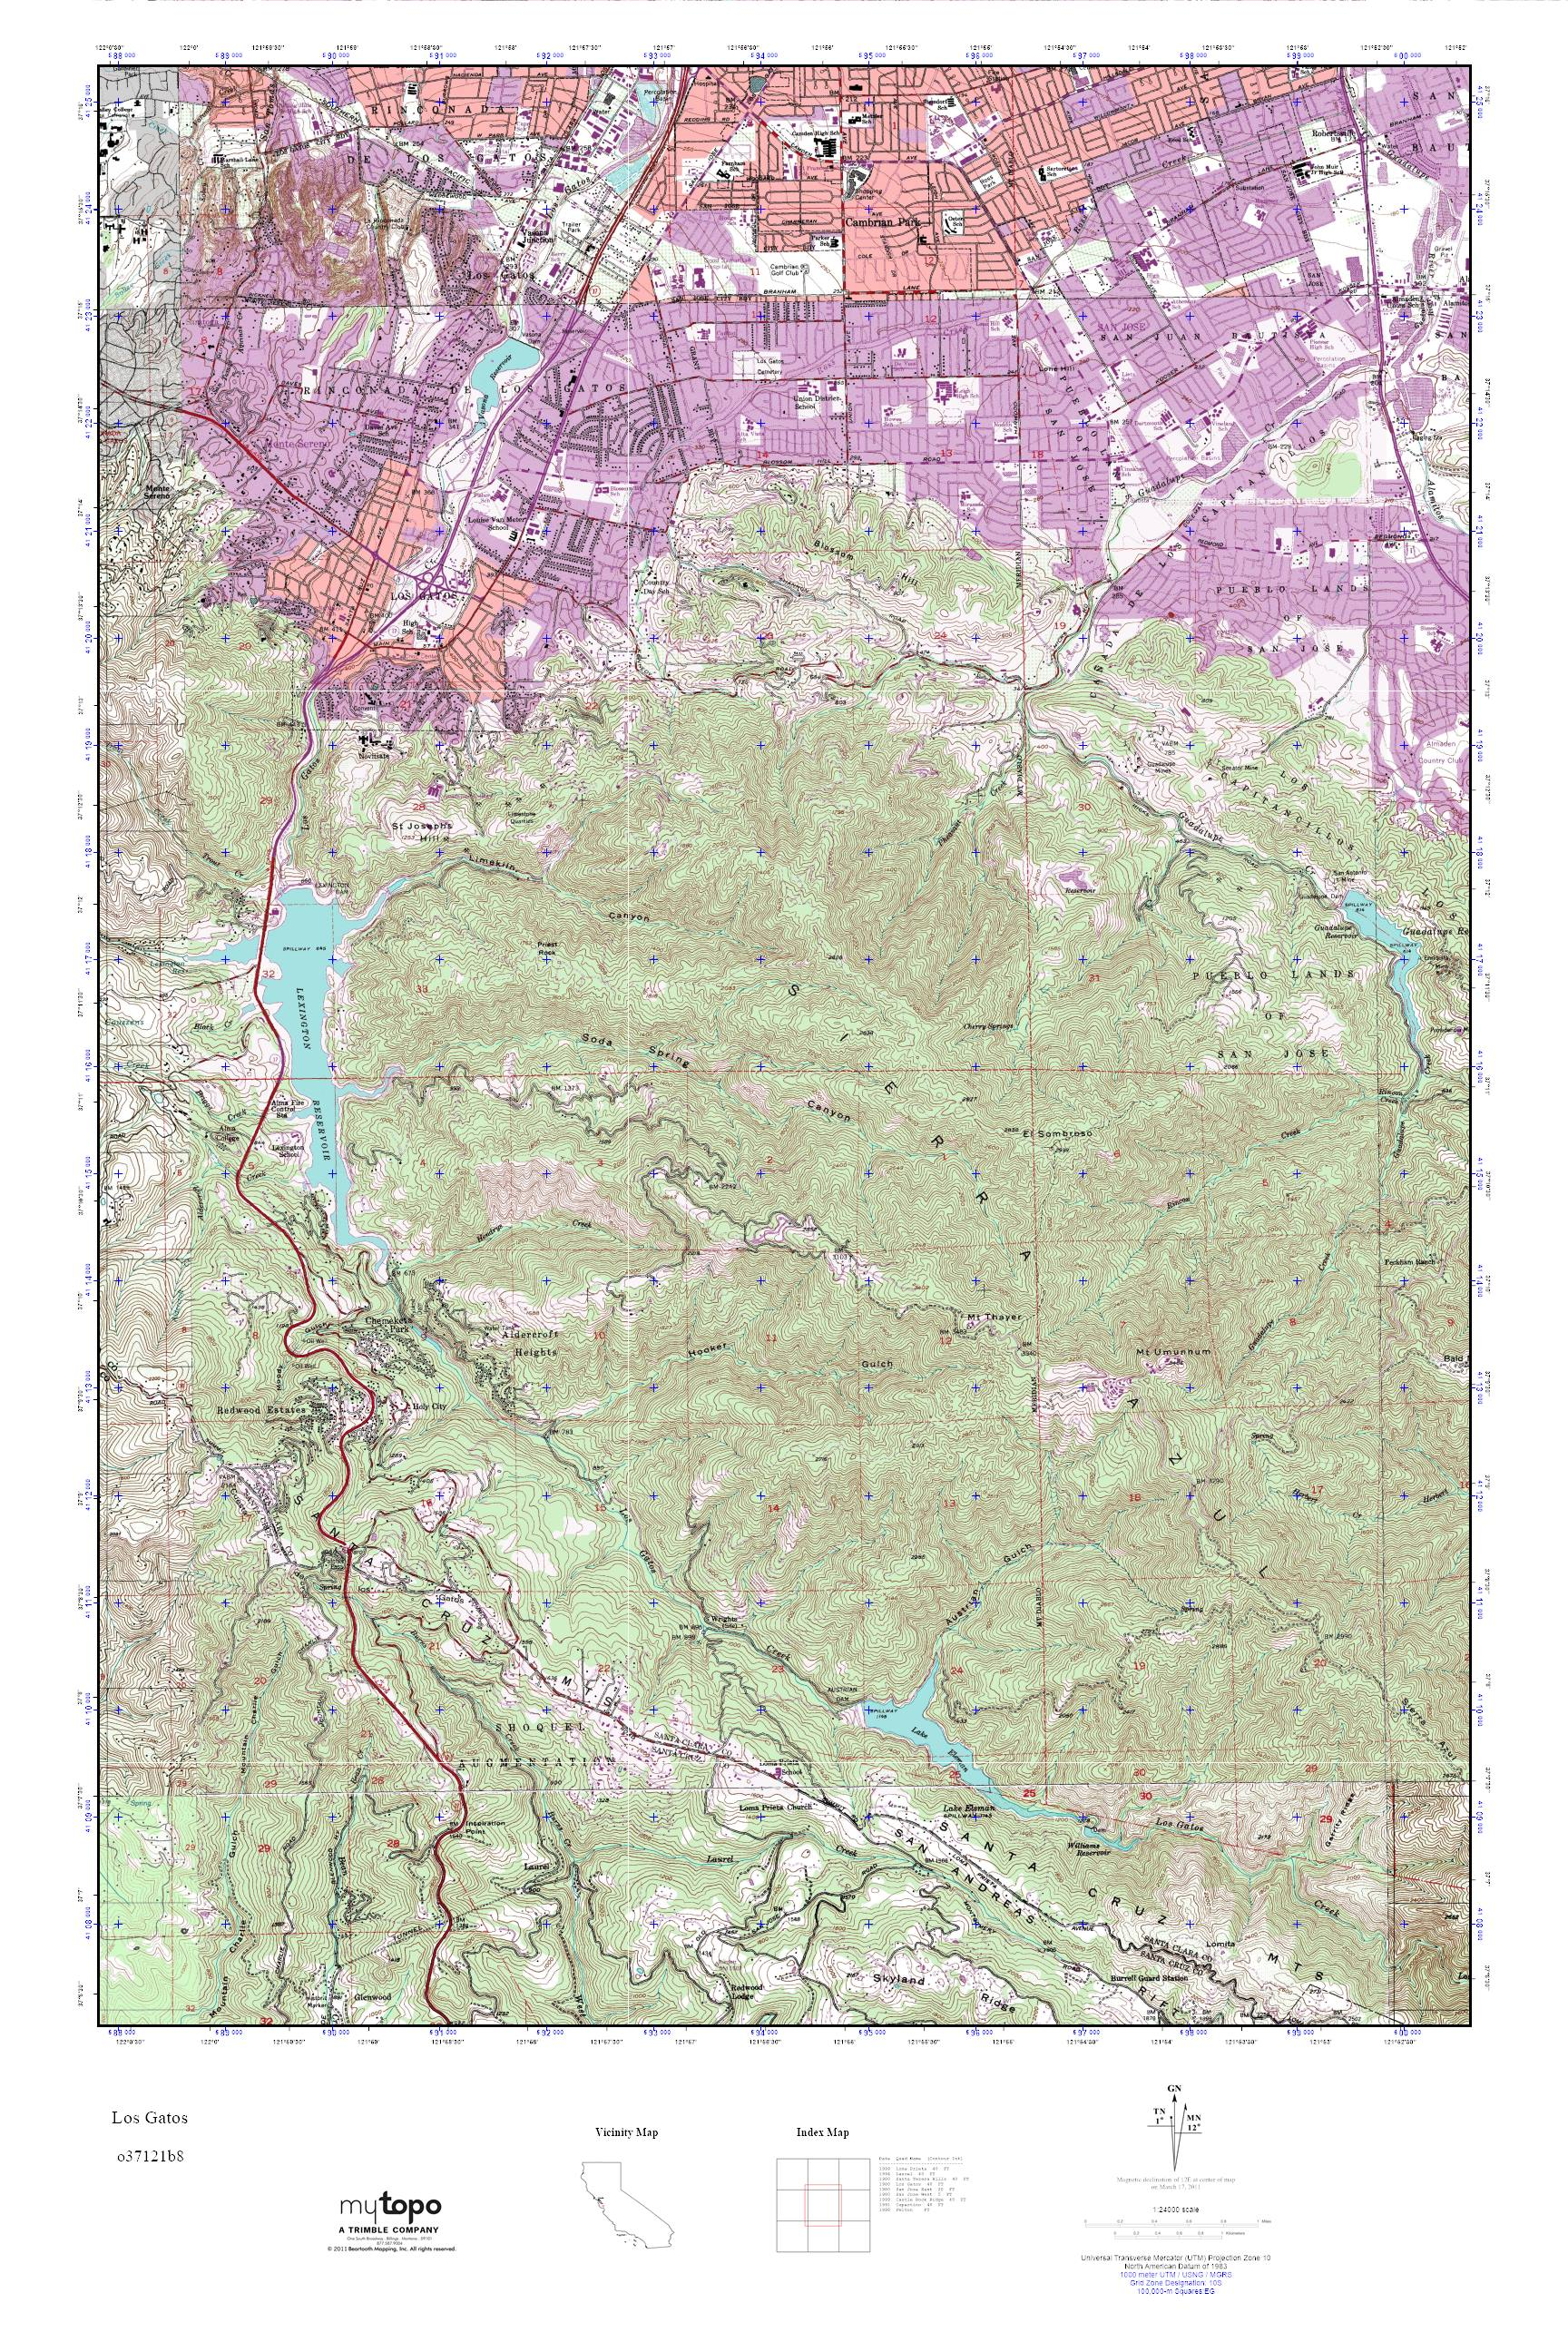 Mytopo Los Gatos California Usgs Quad Topo Map